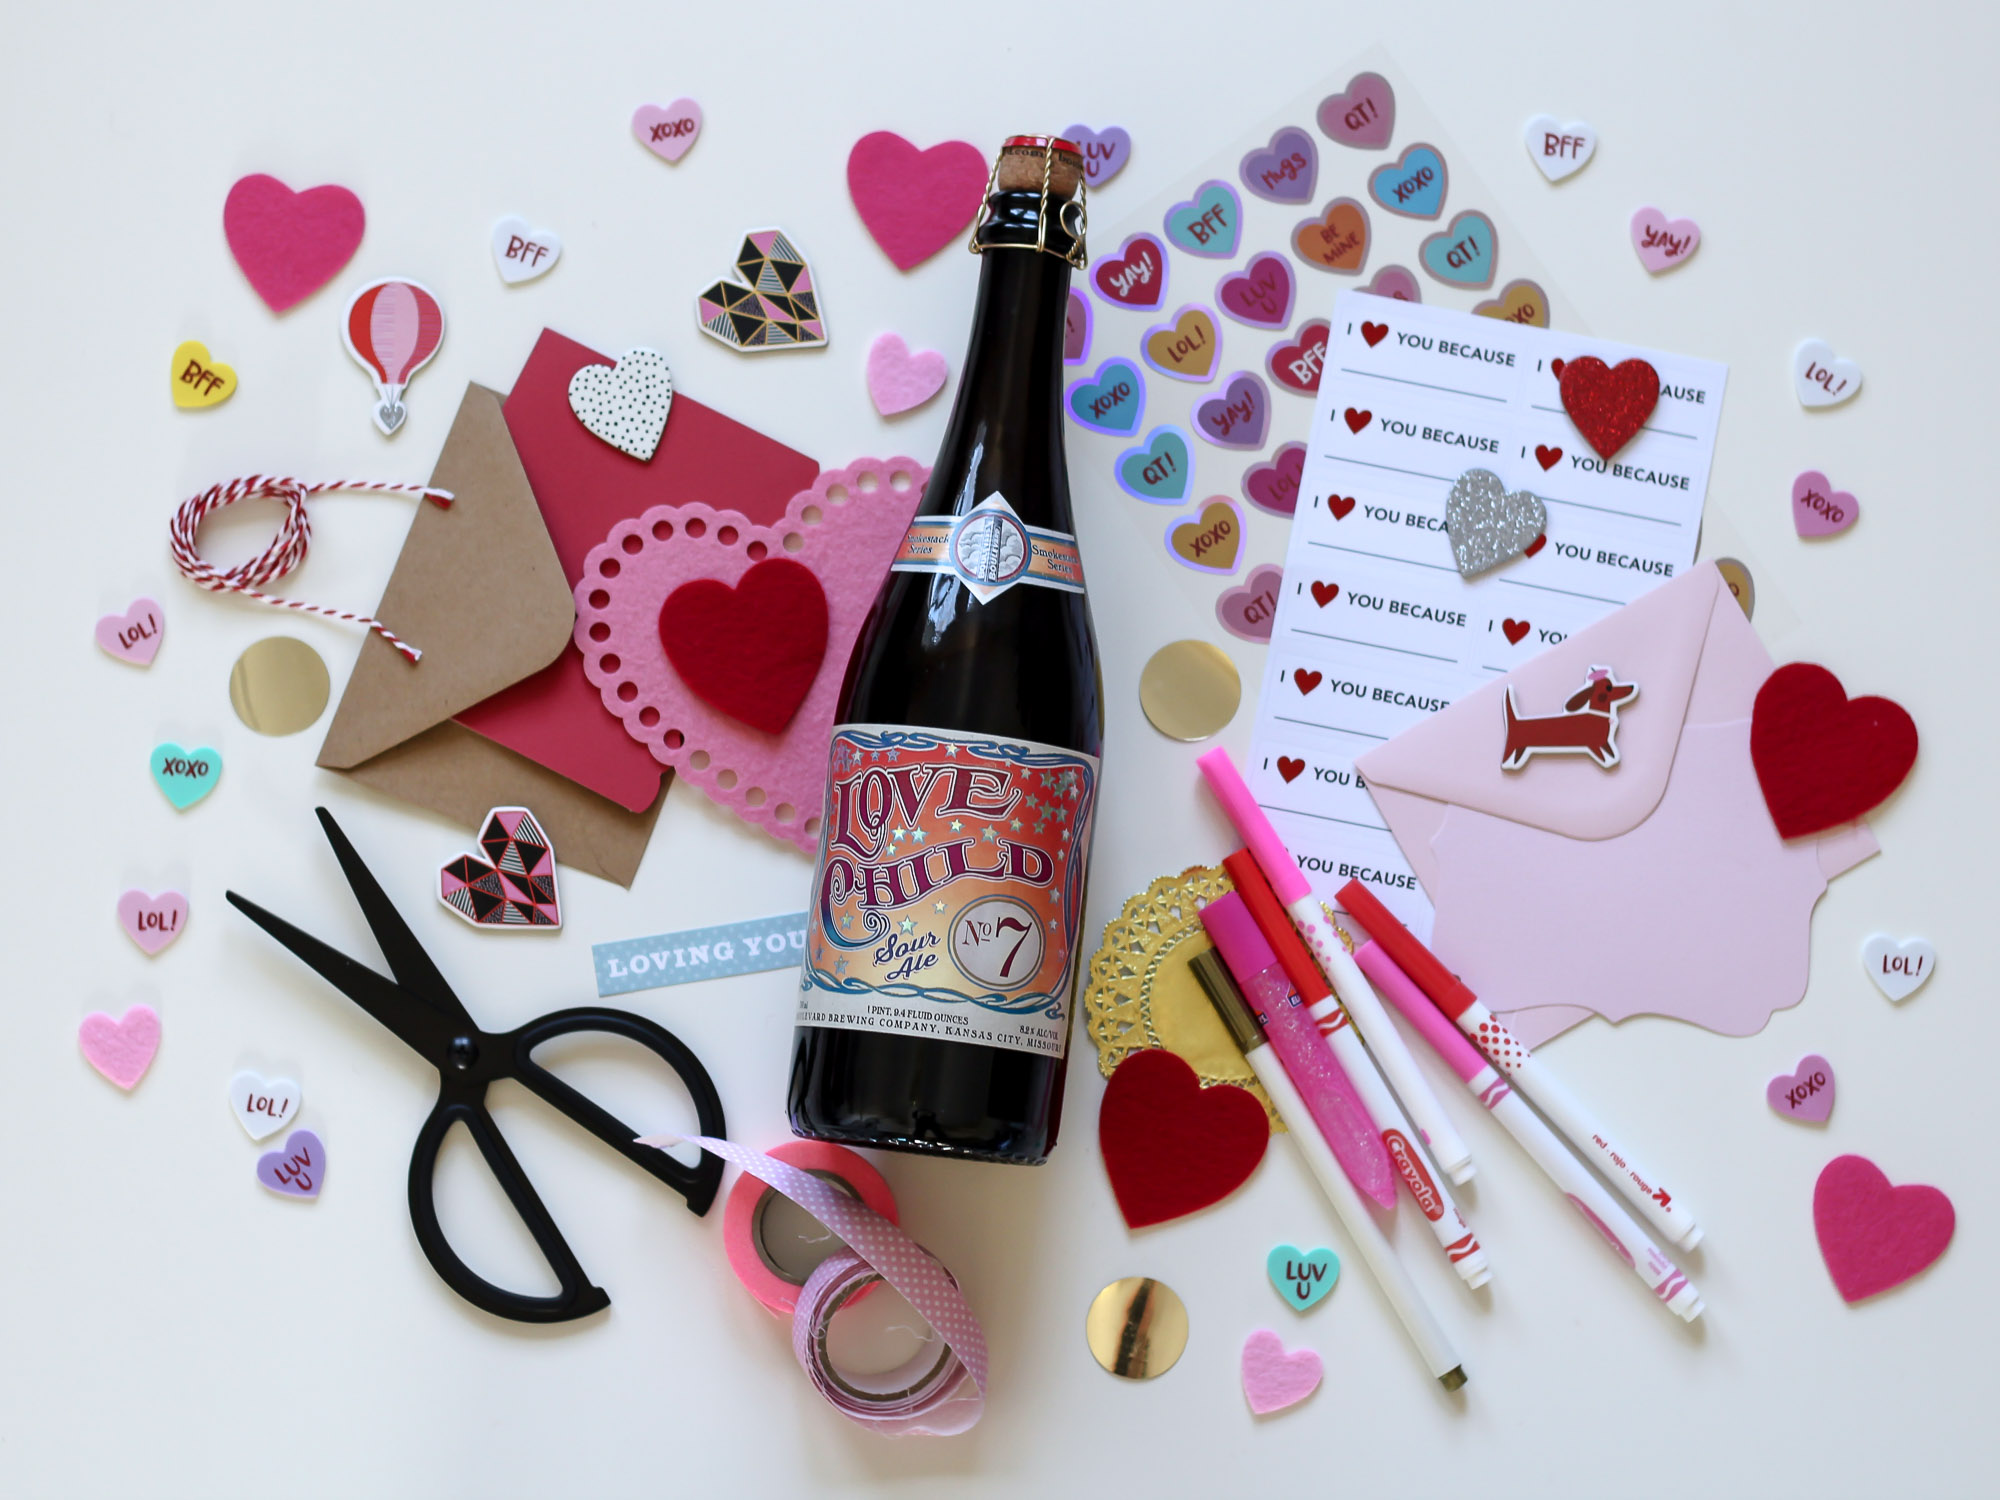 Paper crafts and boozy drafts